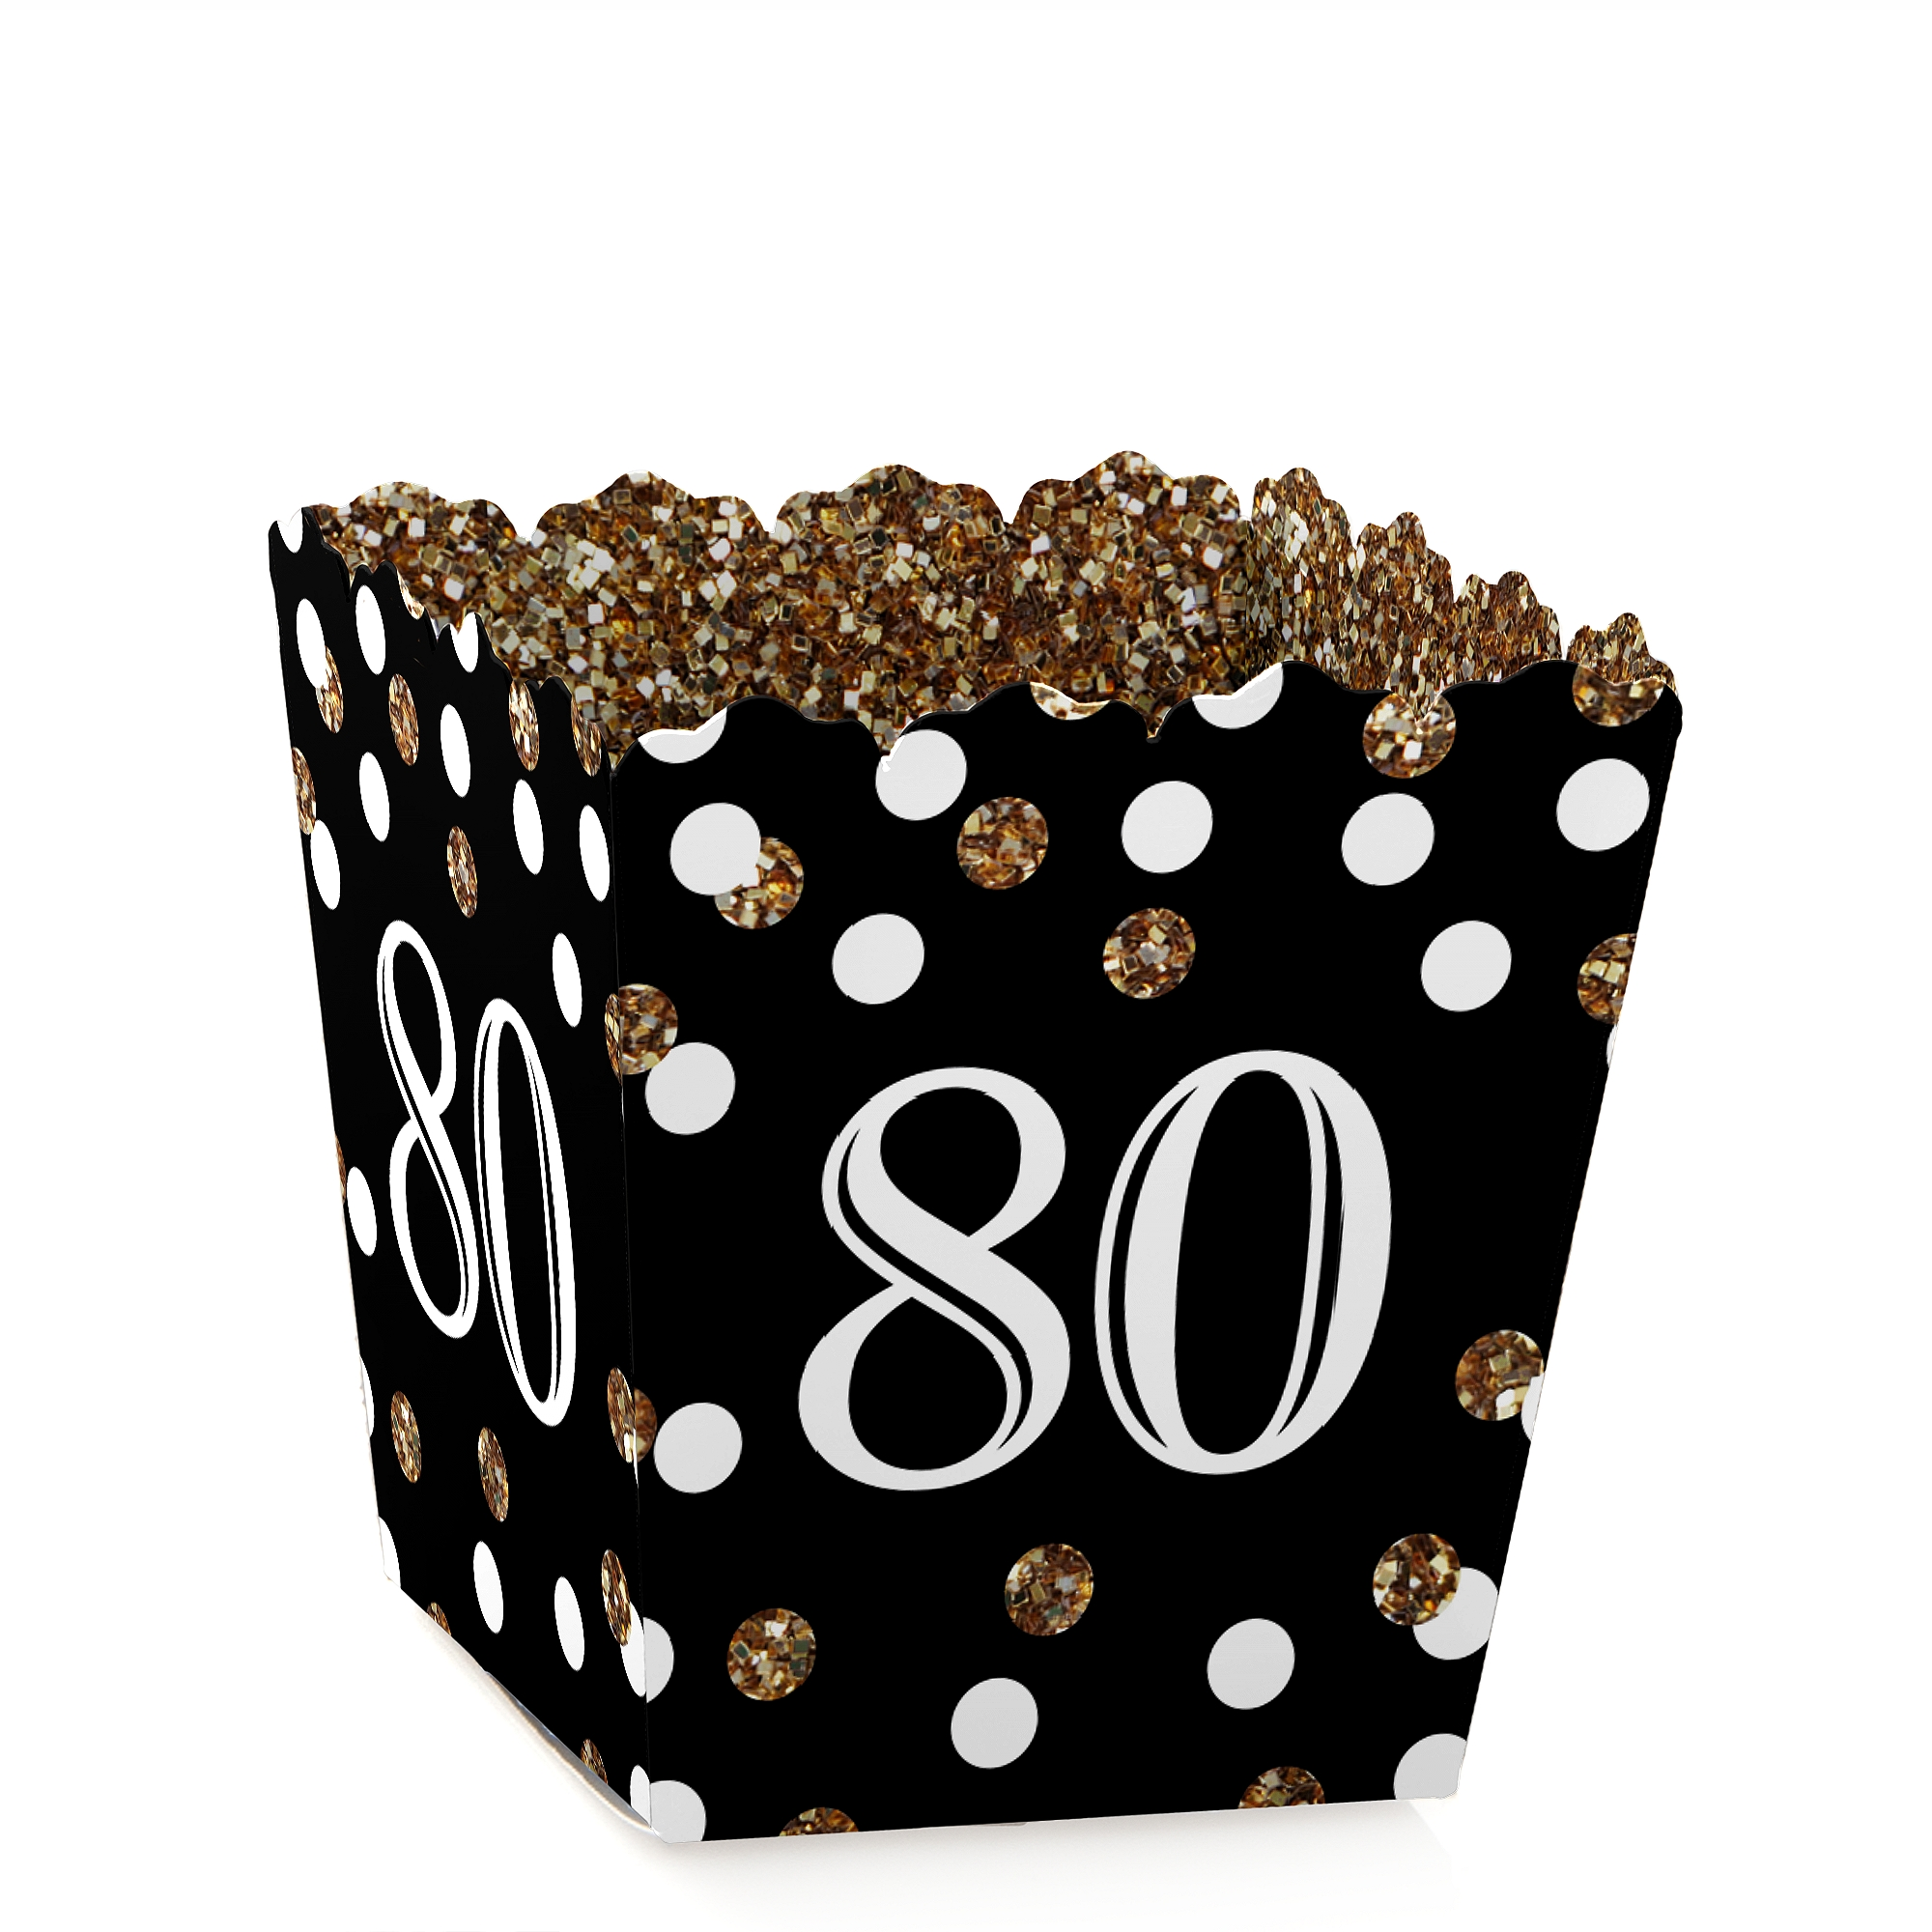 Adult 80th Birthday - Gold - Party Mini Favor Boxes - Birthday Party Treat Candy Boxes - Set of 12